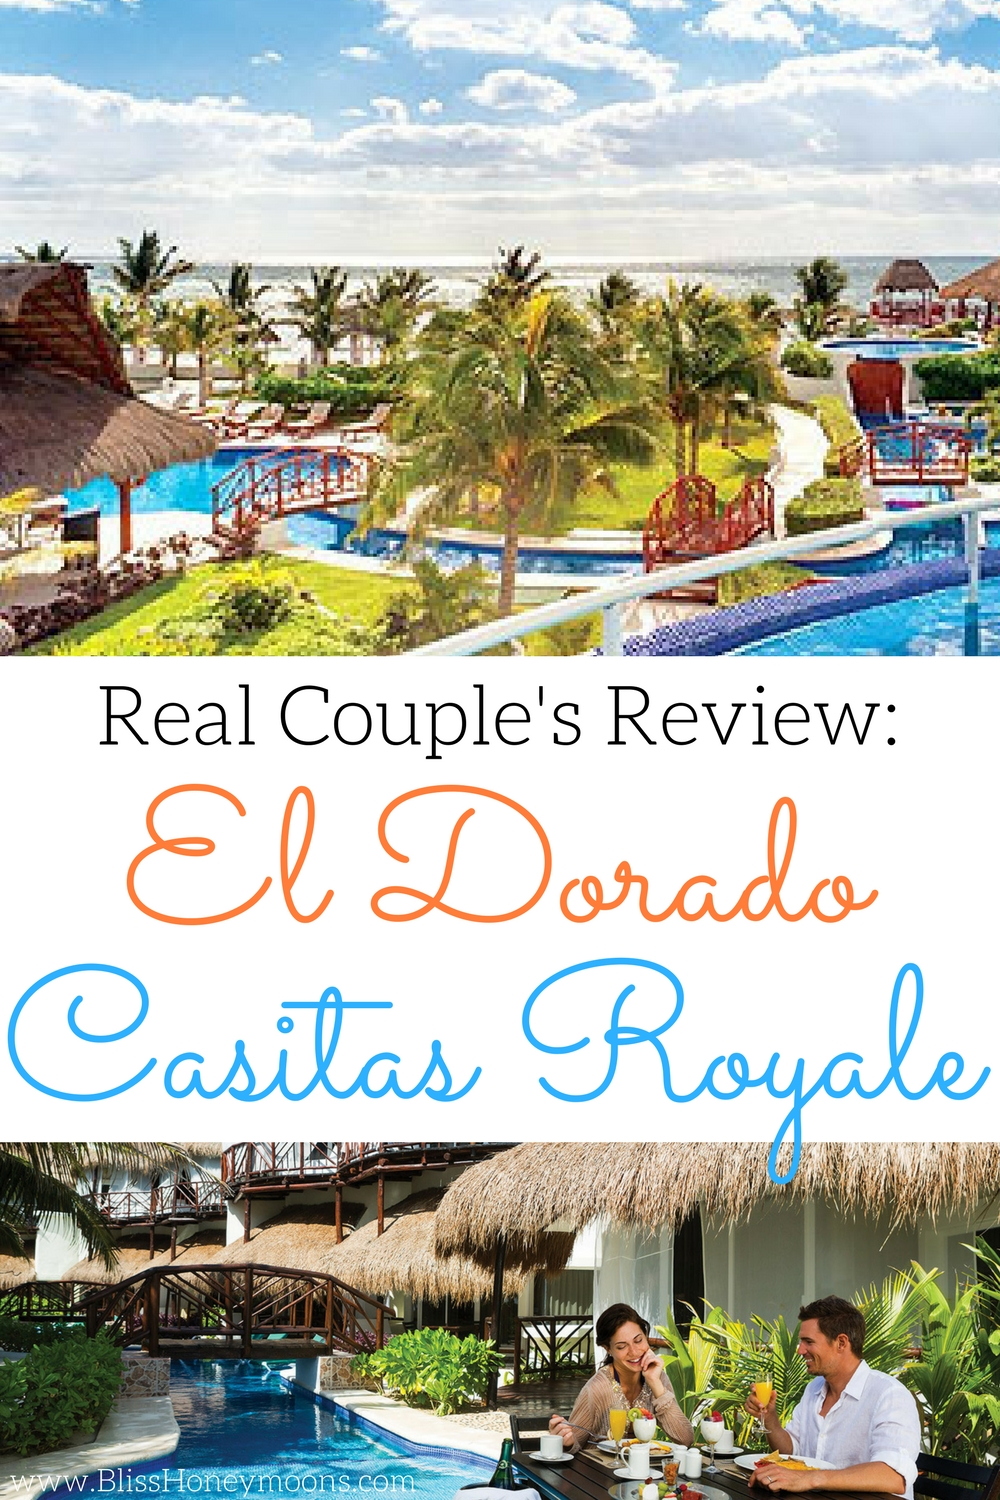 El Dorado Casitas Royale review, foodie travel review, foodie travel, honeymoon travel review, honeymoon travel agent review, best honeymoon travel agent, Bliss Honeymoons review, El Dorado Casitas Royale honeymoon, honeymoon at El Dorado Casitas Royale